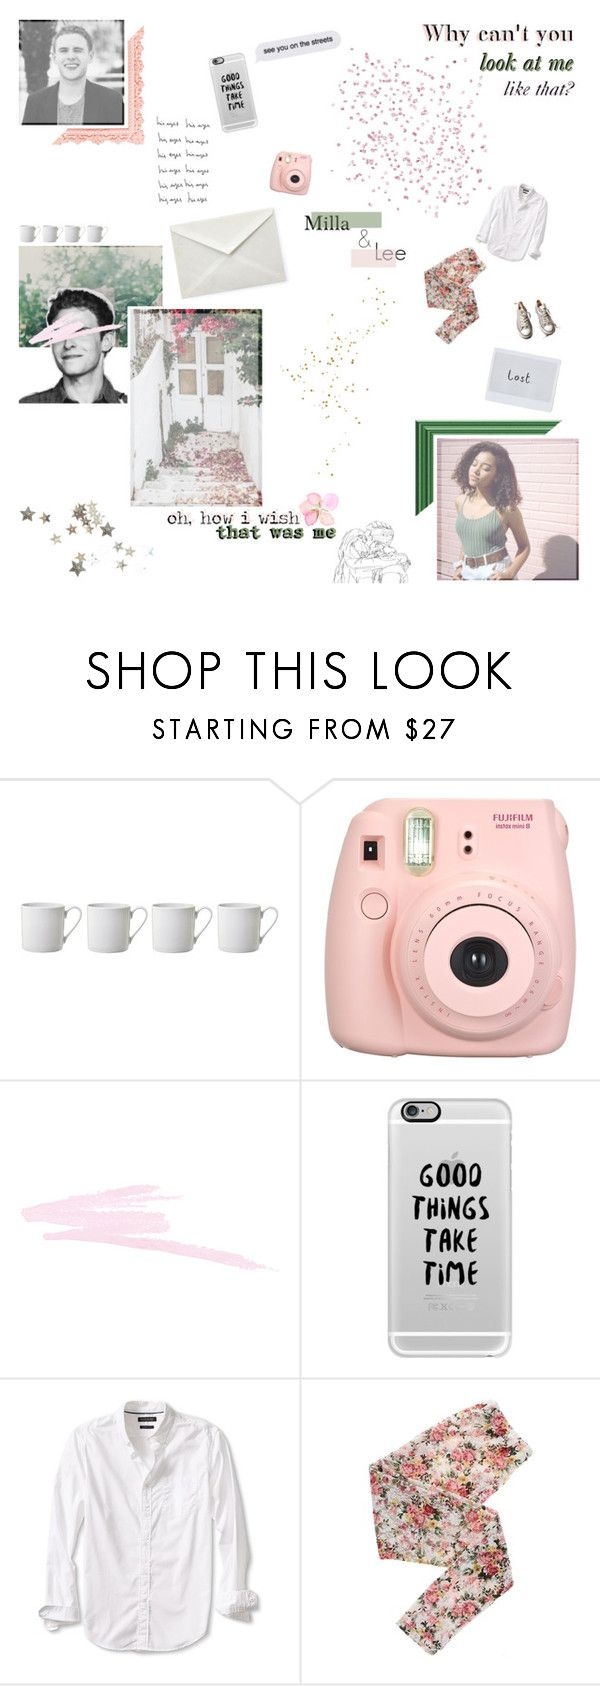 """""""i hear the beat of my heart getting louder"""" by tangled-up-in-thoughts ❤ liked on Polyvore featuring PATH, LSA International, Fujifilm, NARS Cosmetics, Casetify, Banana Republic, Mismash, Converse and botfdso1"""